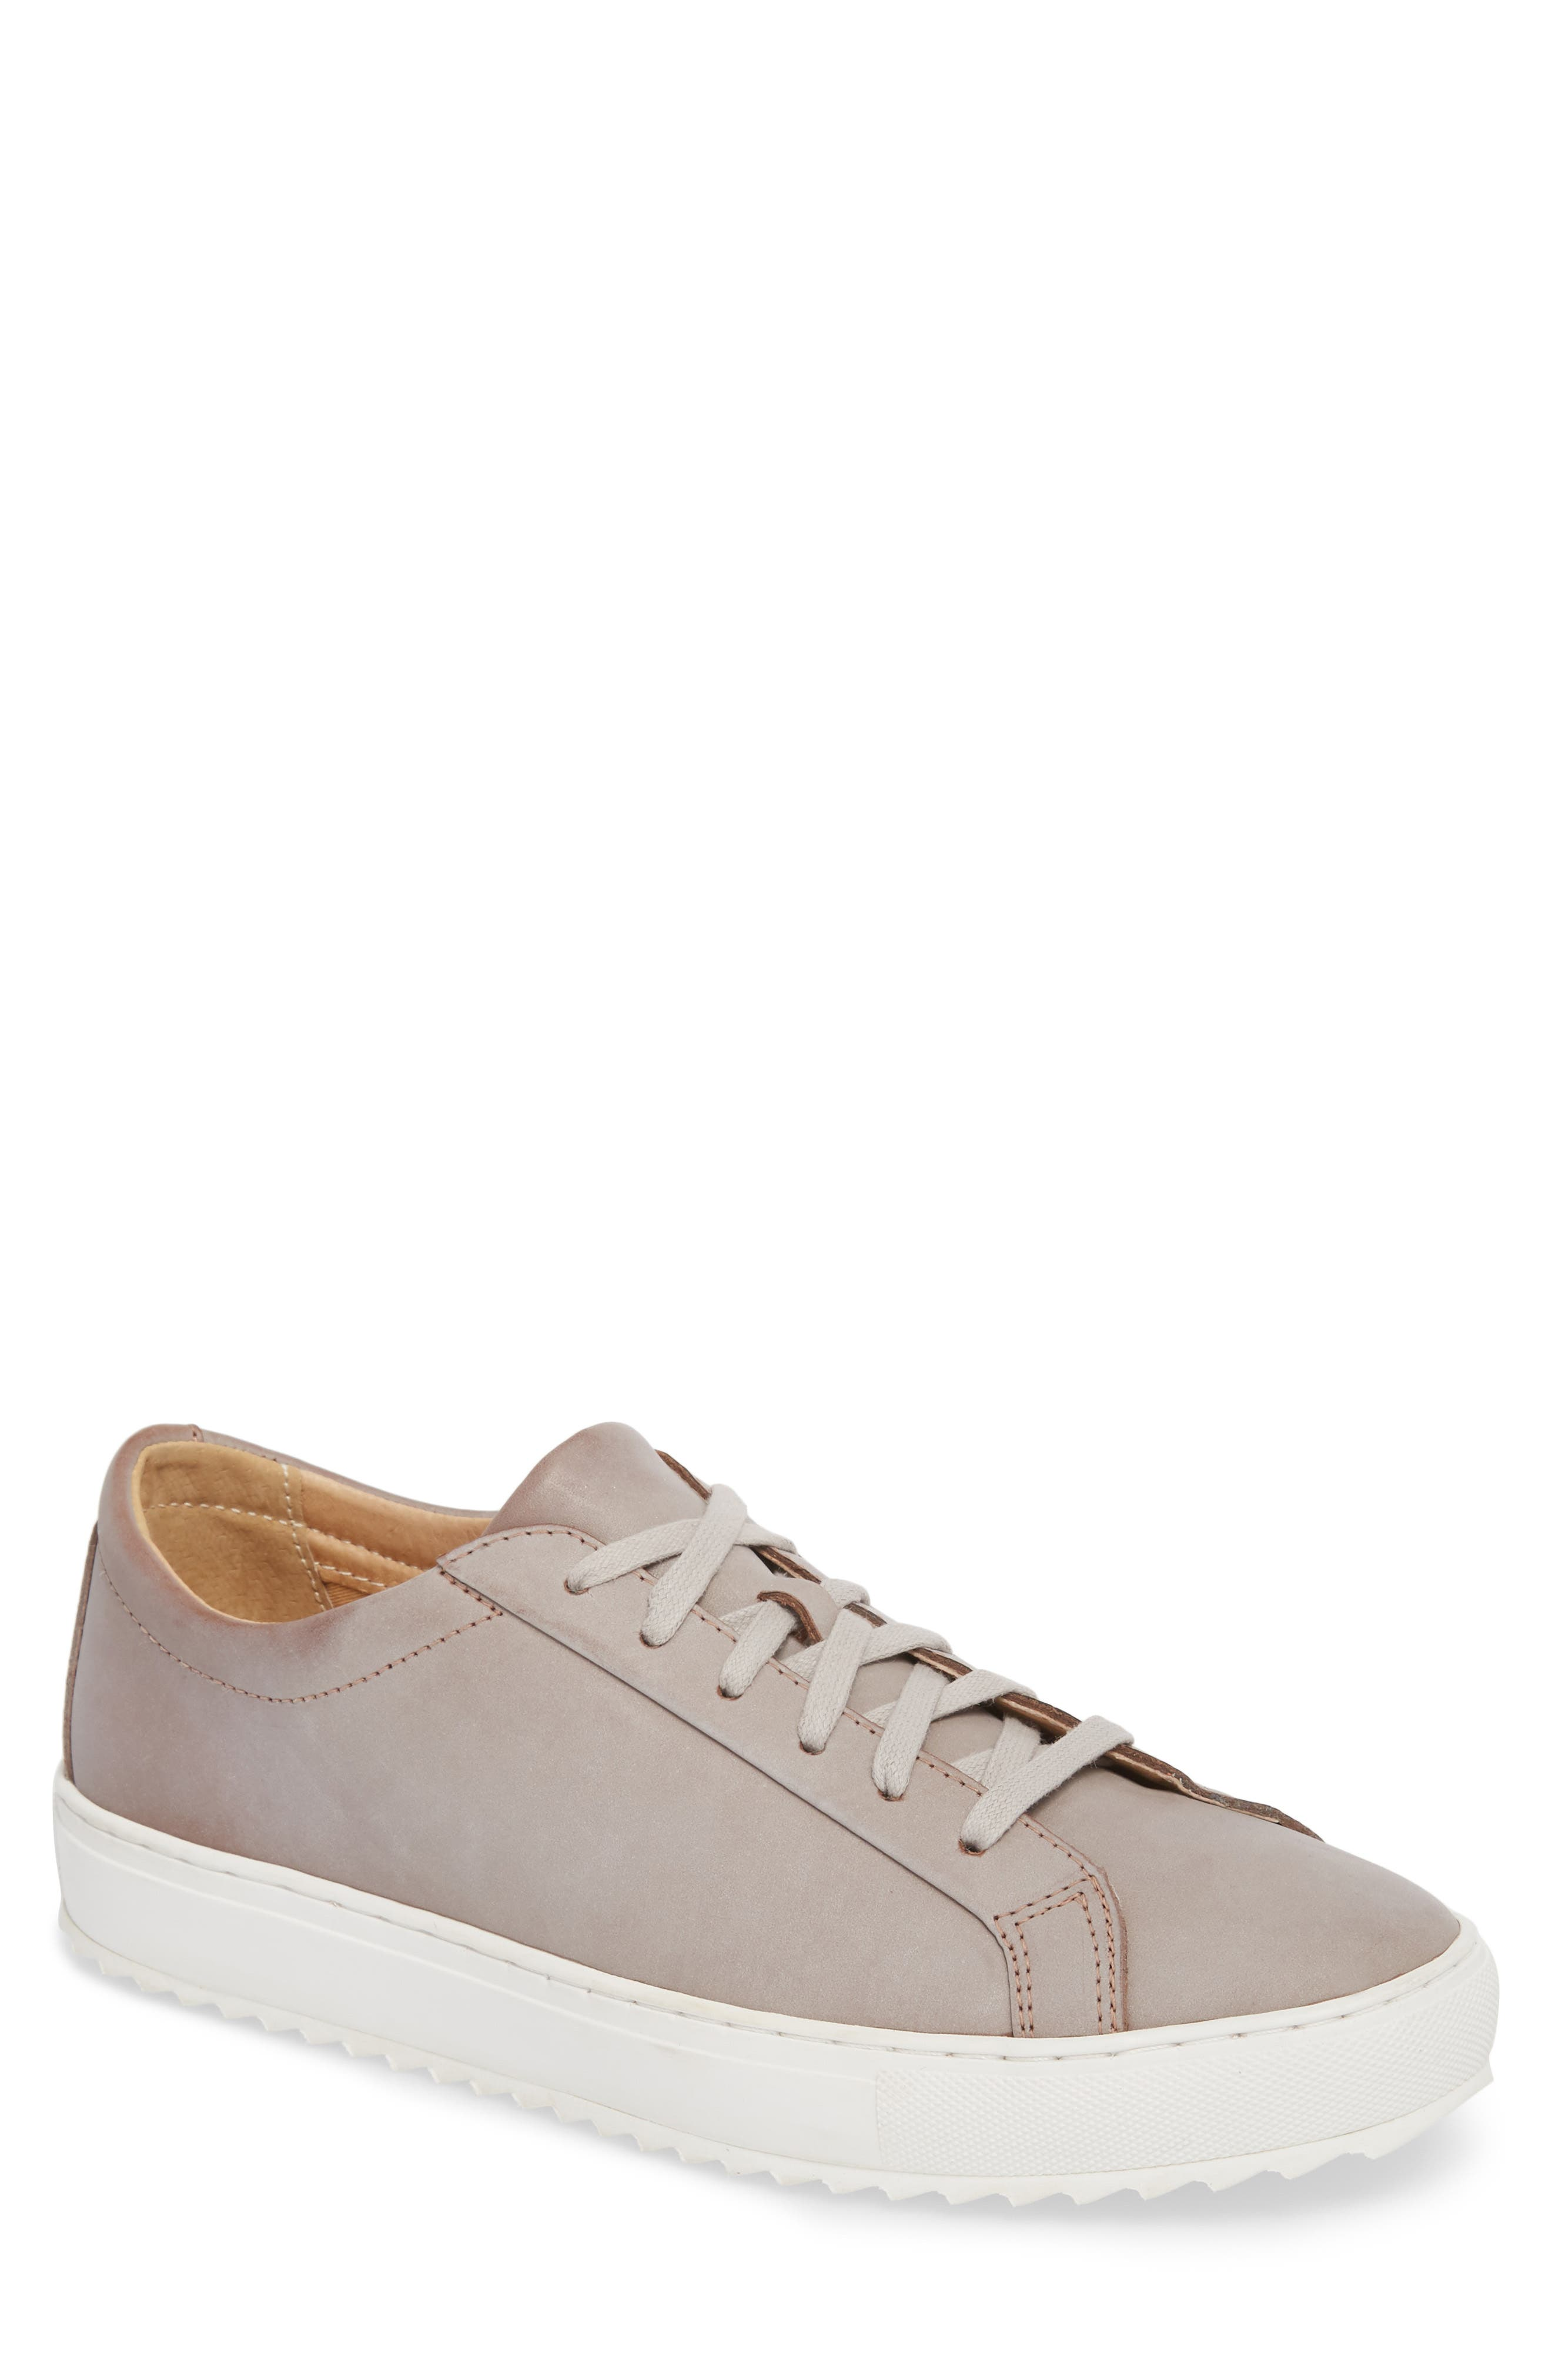 Kennedy Lugged Sneaker,                             Main thumbnail 1, color,                             SAND STONE LEATHER